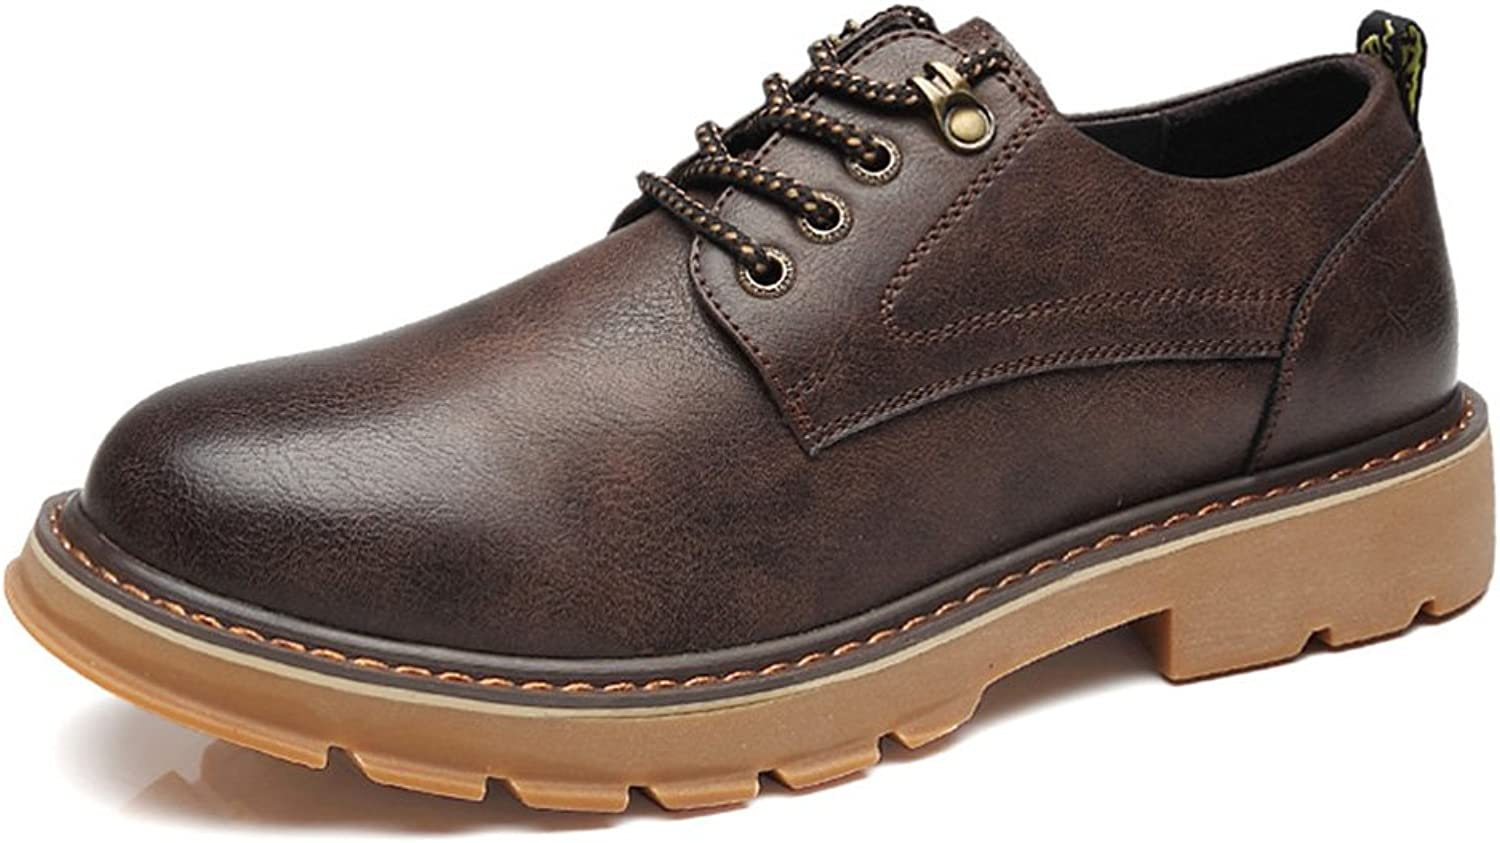 Men's shoes Feifei Spring and Autumn Leisure Breathable Leather shoes 3 colors (color   Brown, Size   EU39 UK6.5 CN40)